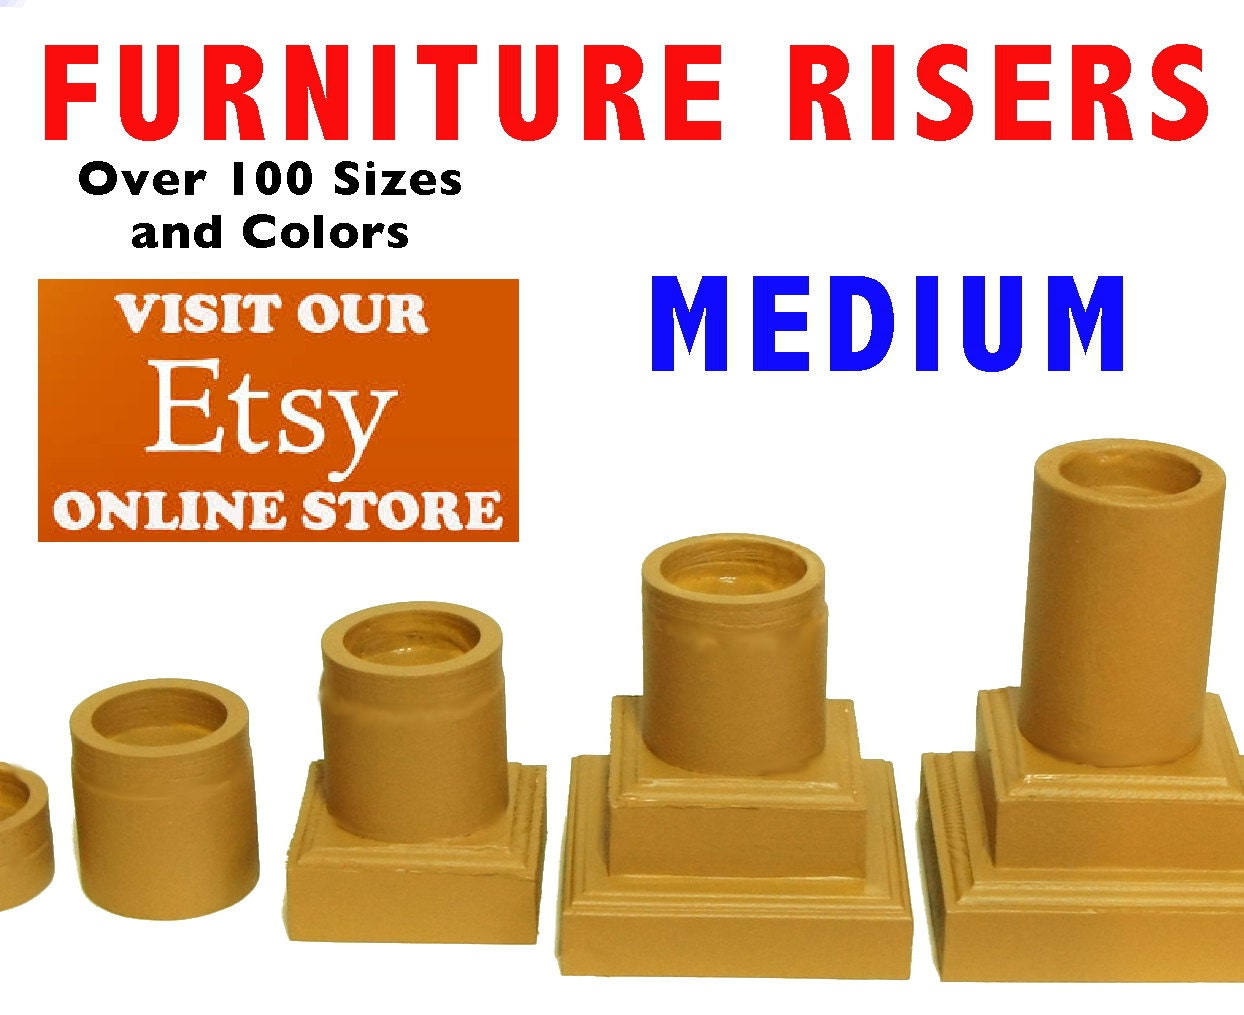 Medium furniture risers and bed lifters by furnitureriserscom for Furniture risers